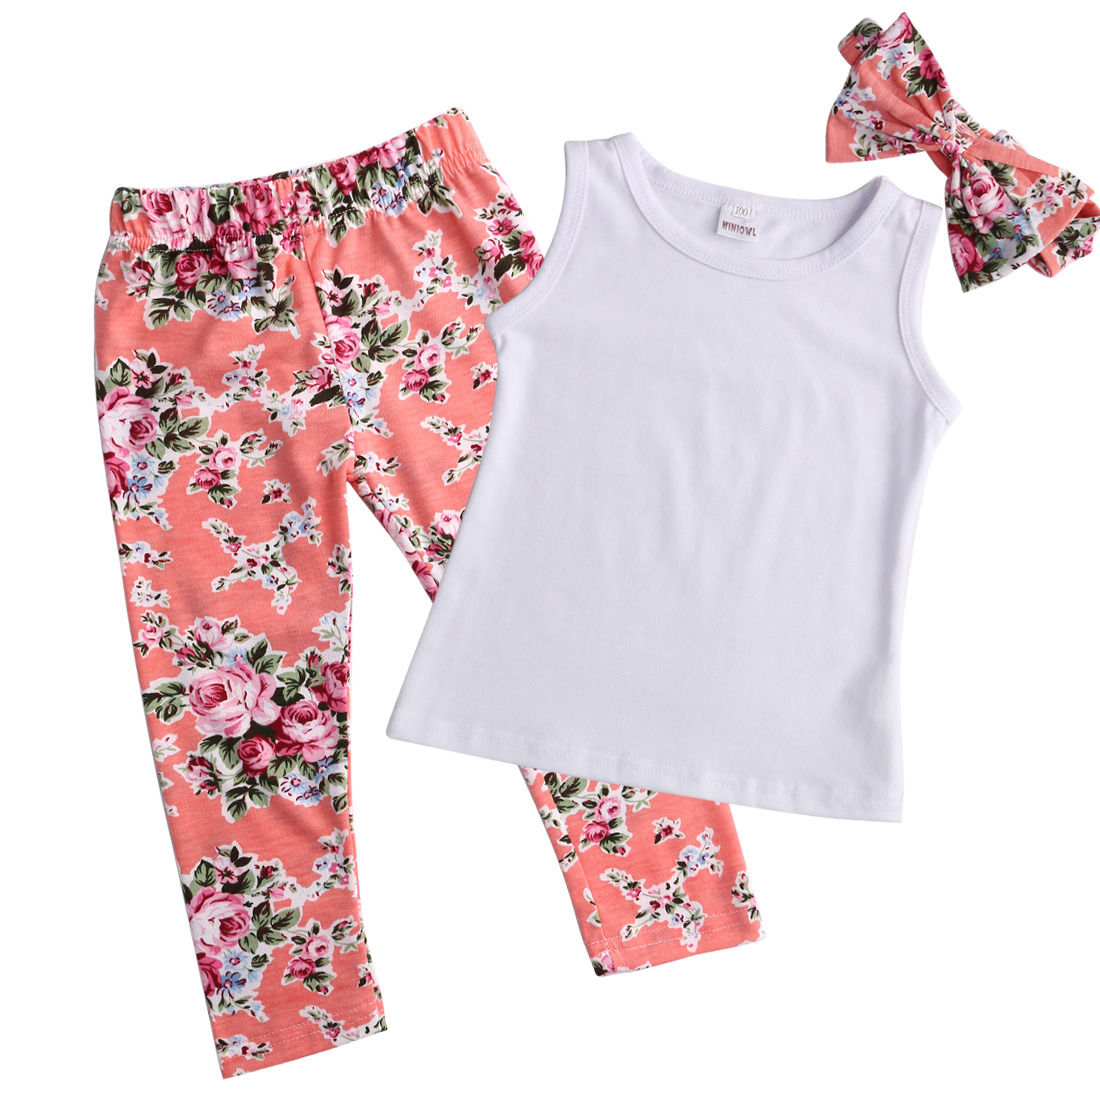 Tops T-shirt Vest Long Pants Children Kids Baby Girls Clothing 3pcs Flower Vintage Bow Hairband Cotton Clothes Sets Summer New